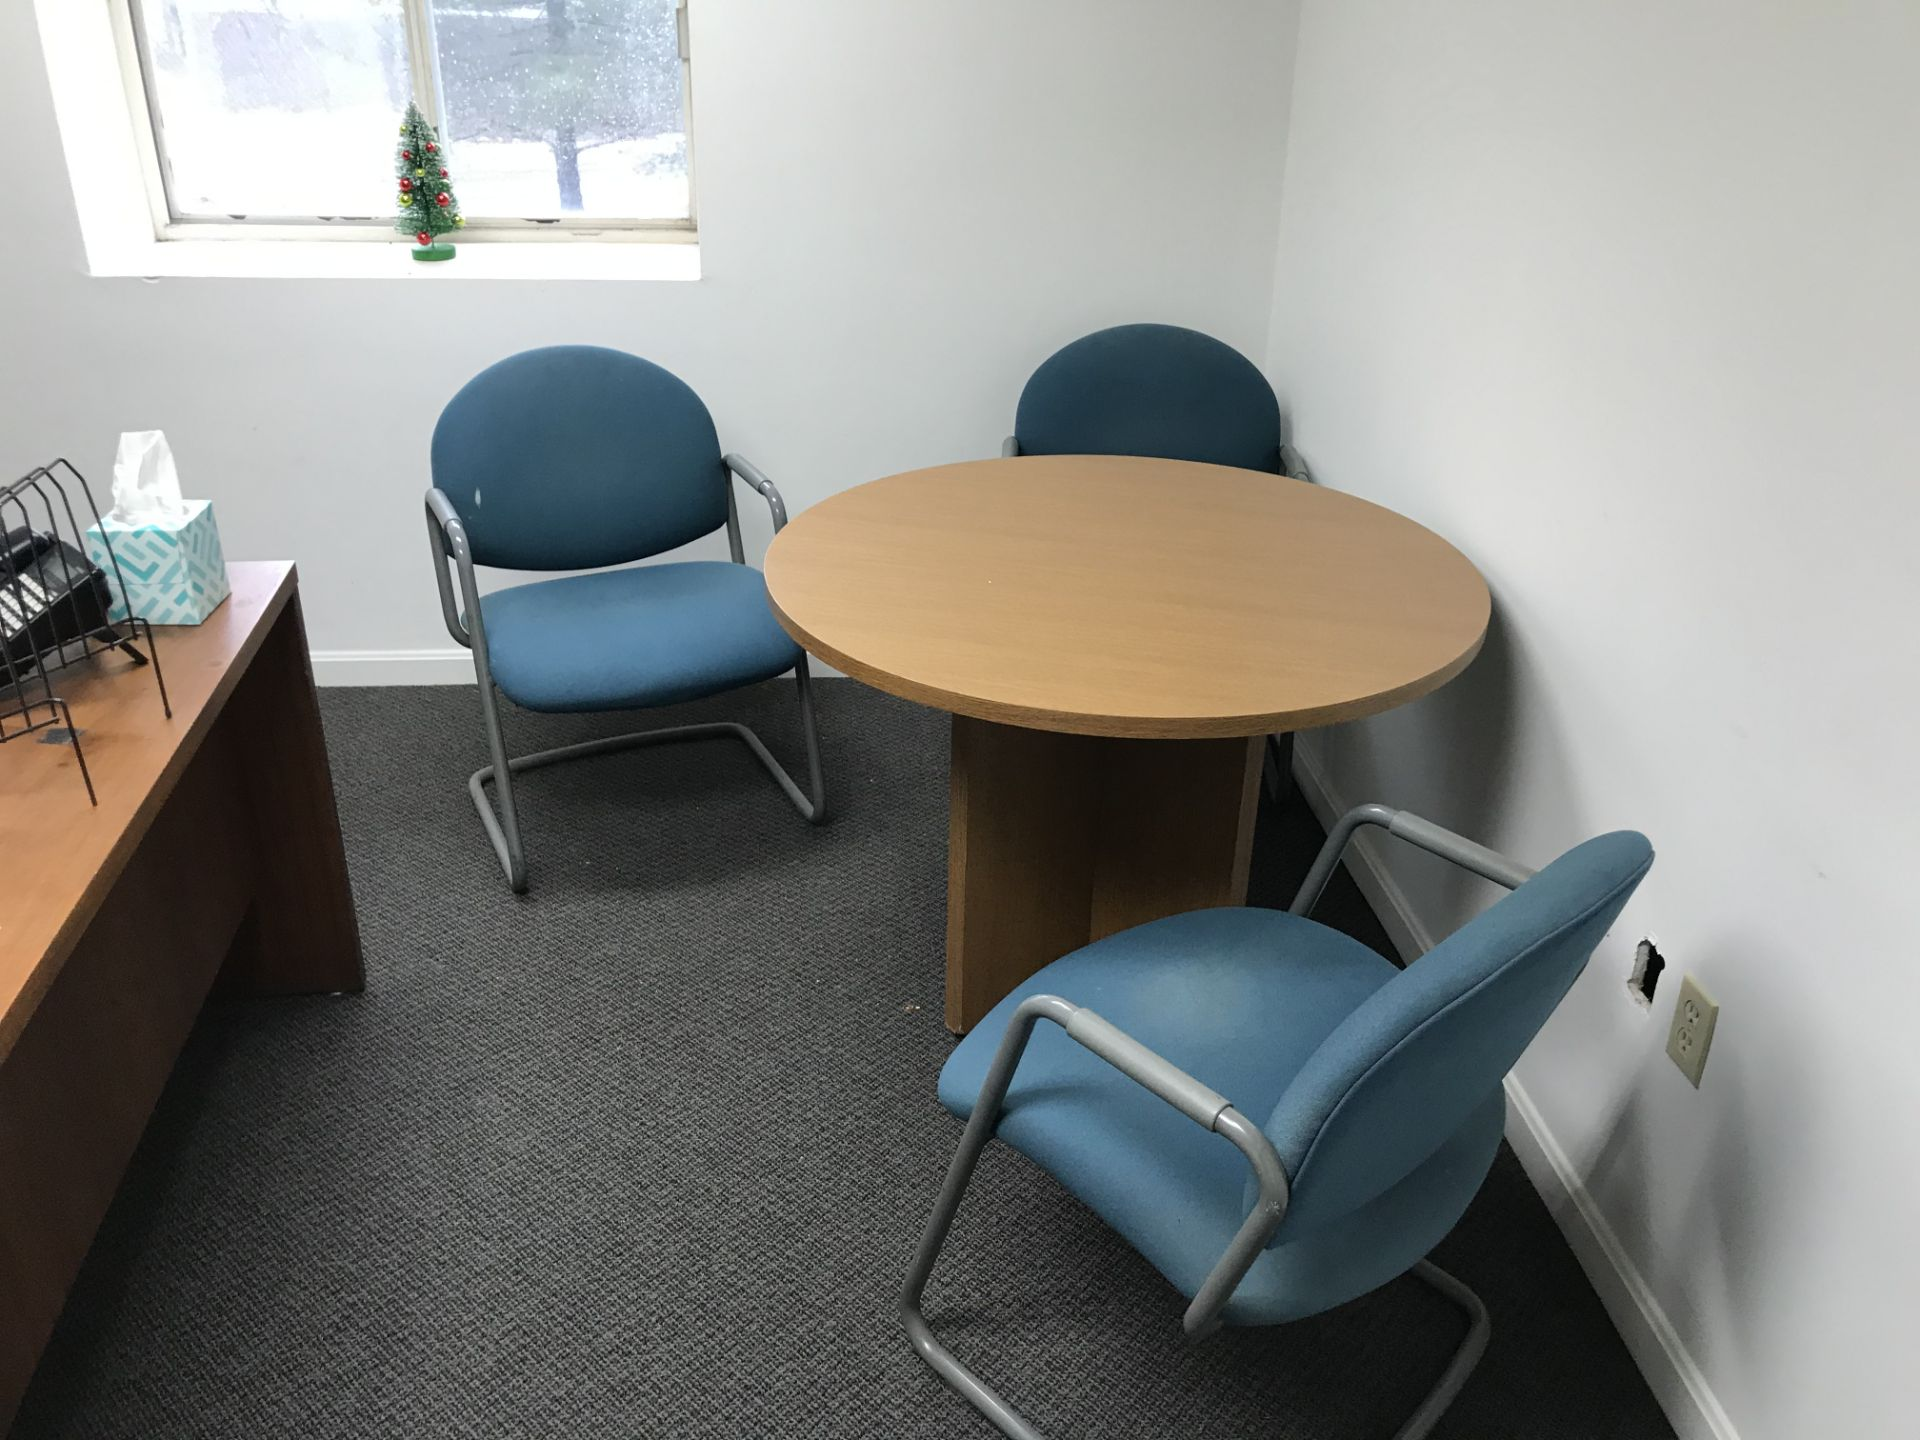 Lot 13 - {LOT} In Office c/o: Desk, Table, Chairs, HP All in One (NO RECORDS & NO PHONE)